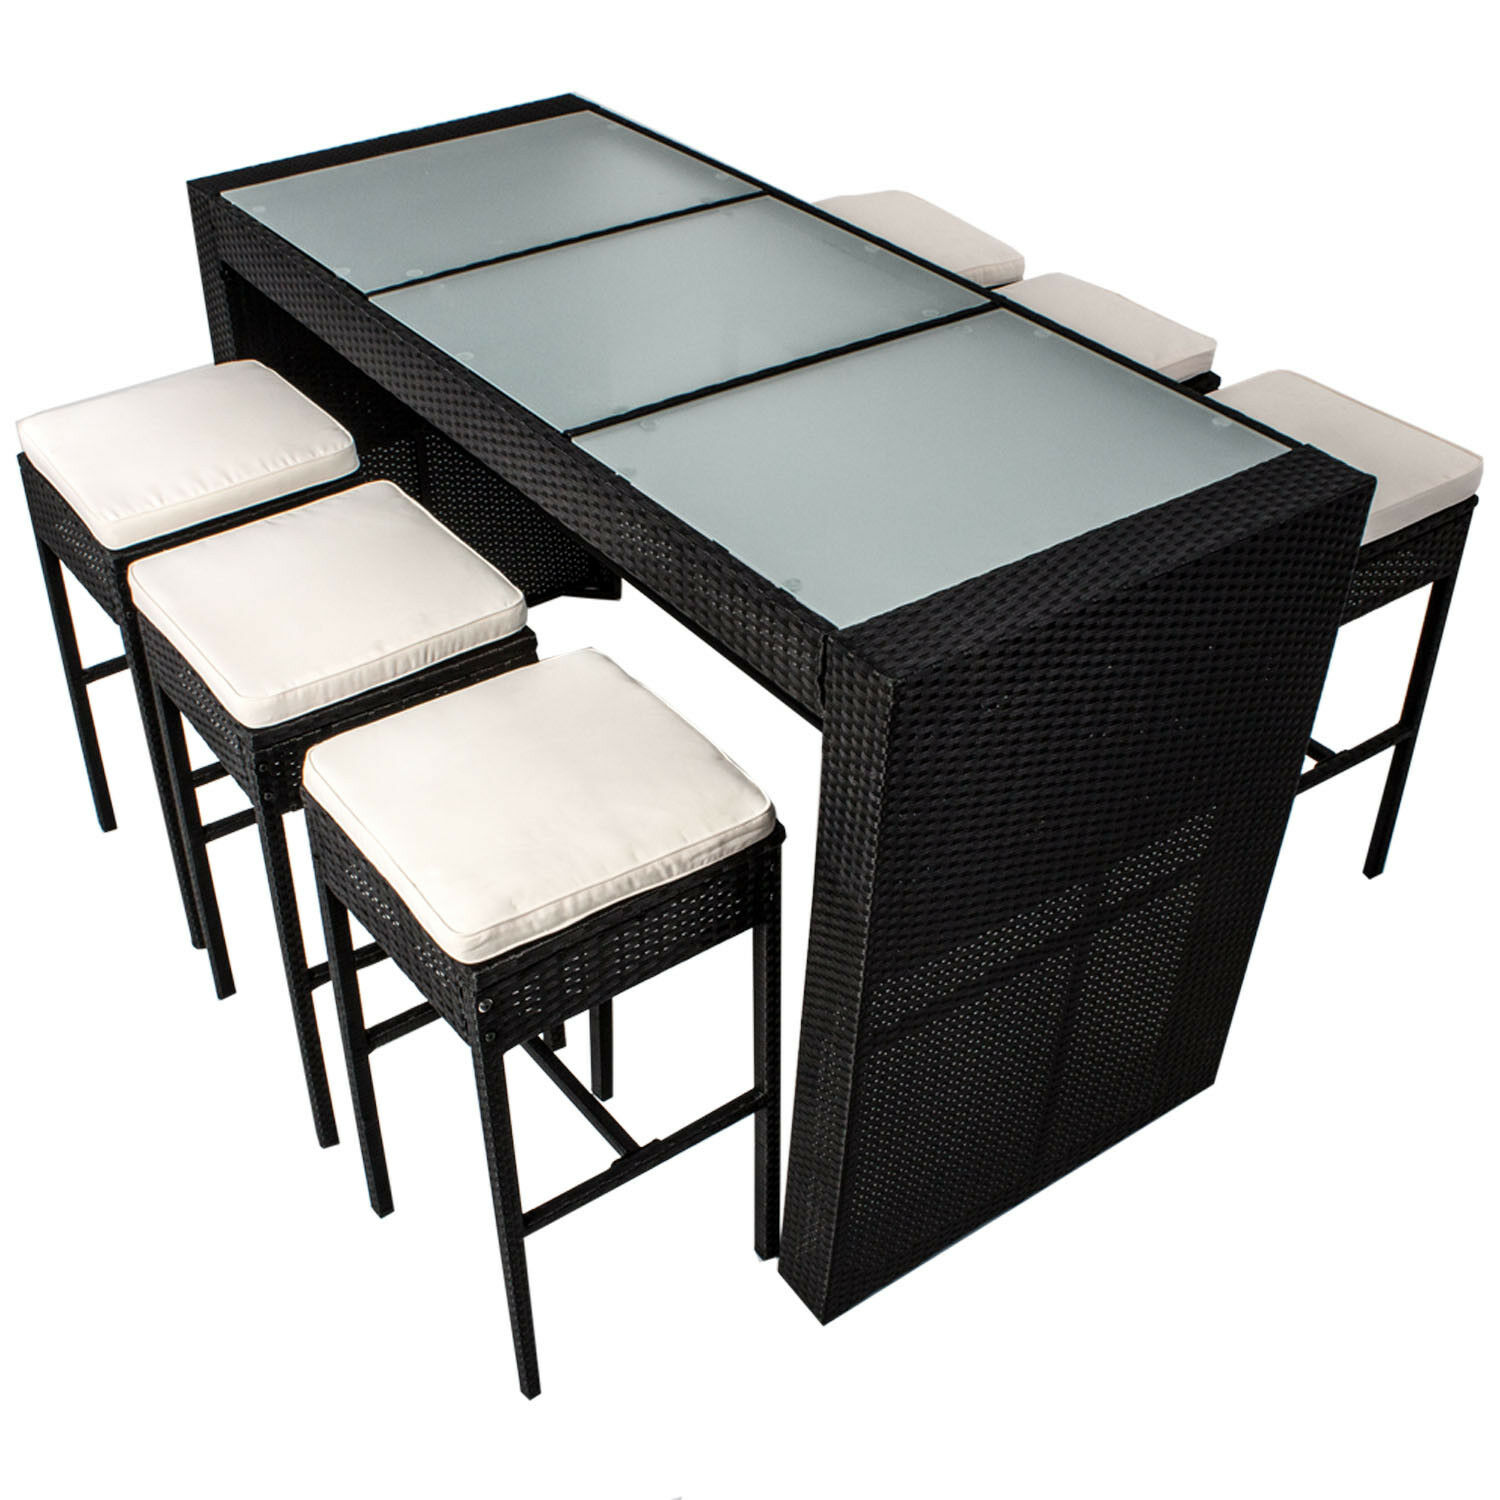 gartenm bel bar set polyrattan lounge gartenset rattan sitzgruppe garnitur neu picclick at. Black Bedroom Furniture Sets. Home Design Ideas